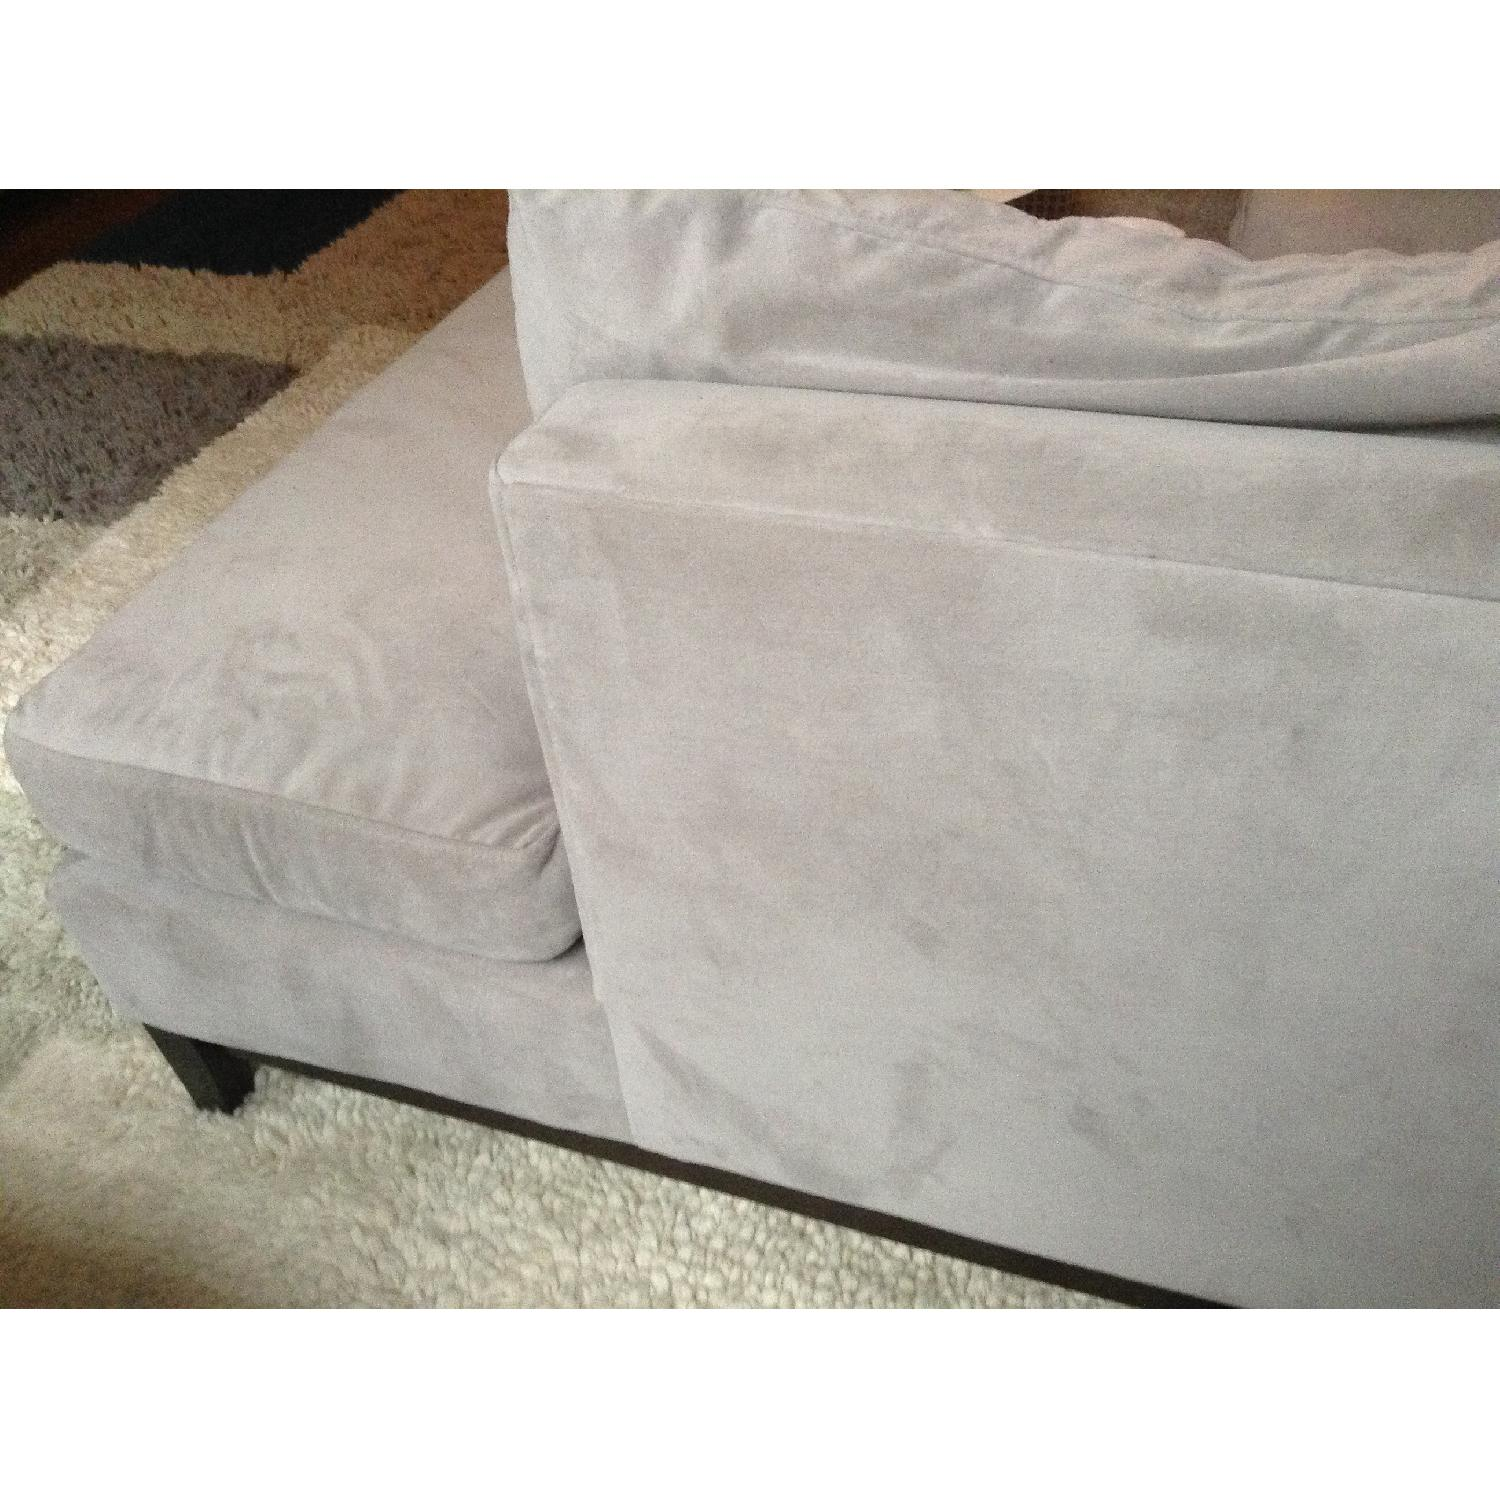 West Elm Blake Sectional Sofa w/ Chaise - image-1